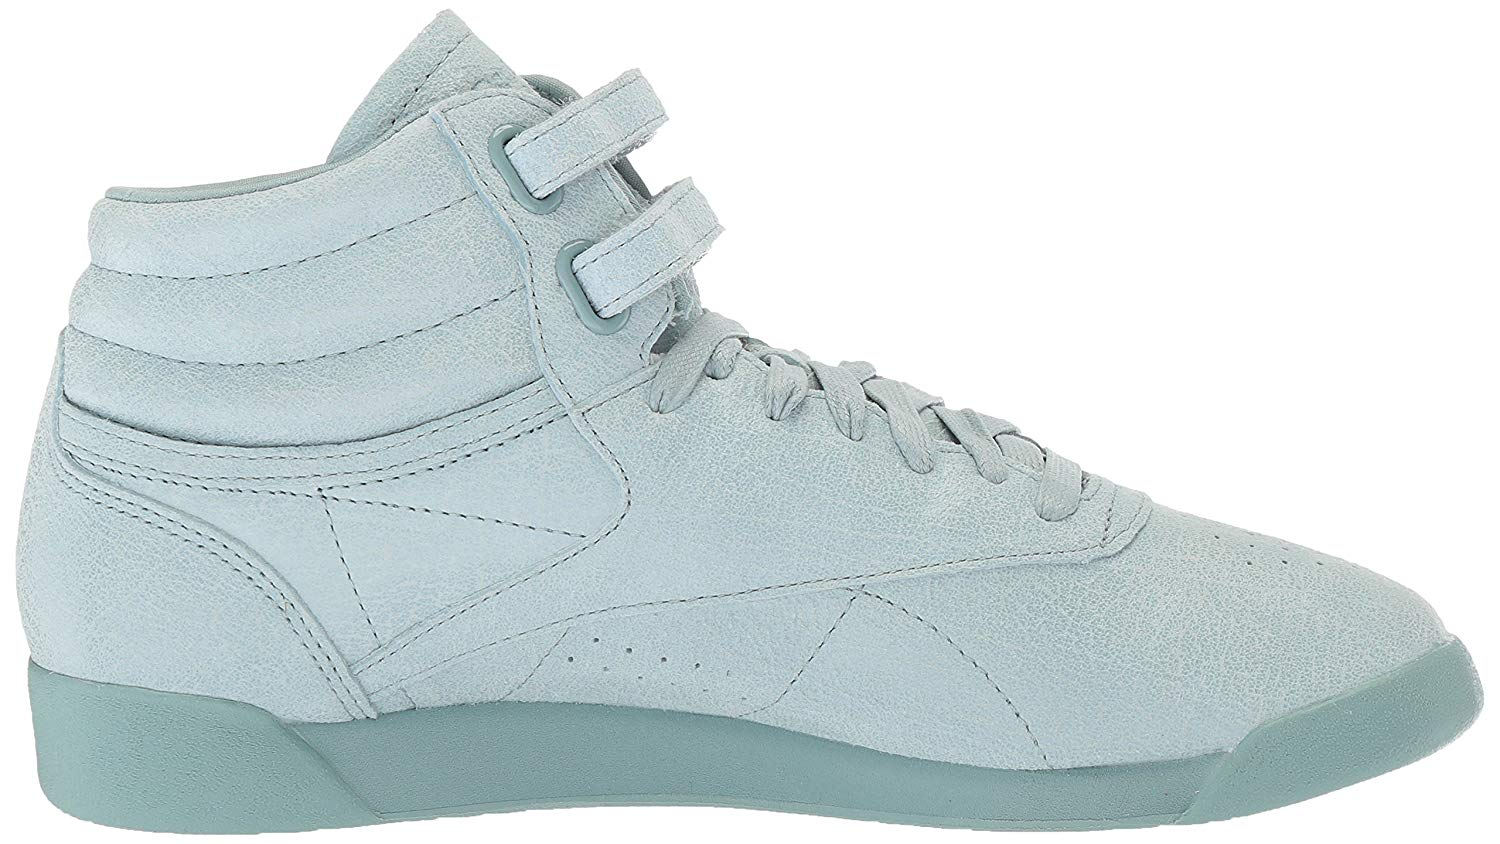 Reebok - NEW Reebok Women s Fashion Shoes Freestyle HI FBT Lace Up Leather  Sneakers - Walmart.com 304c53f6b